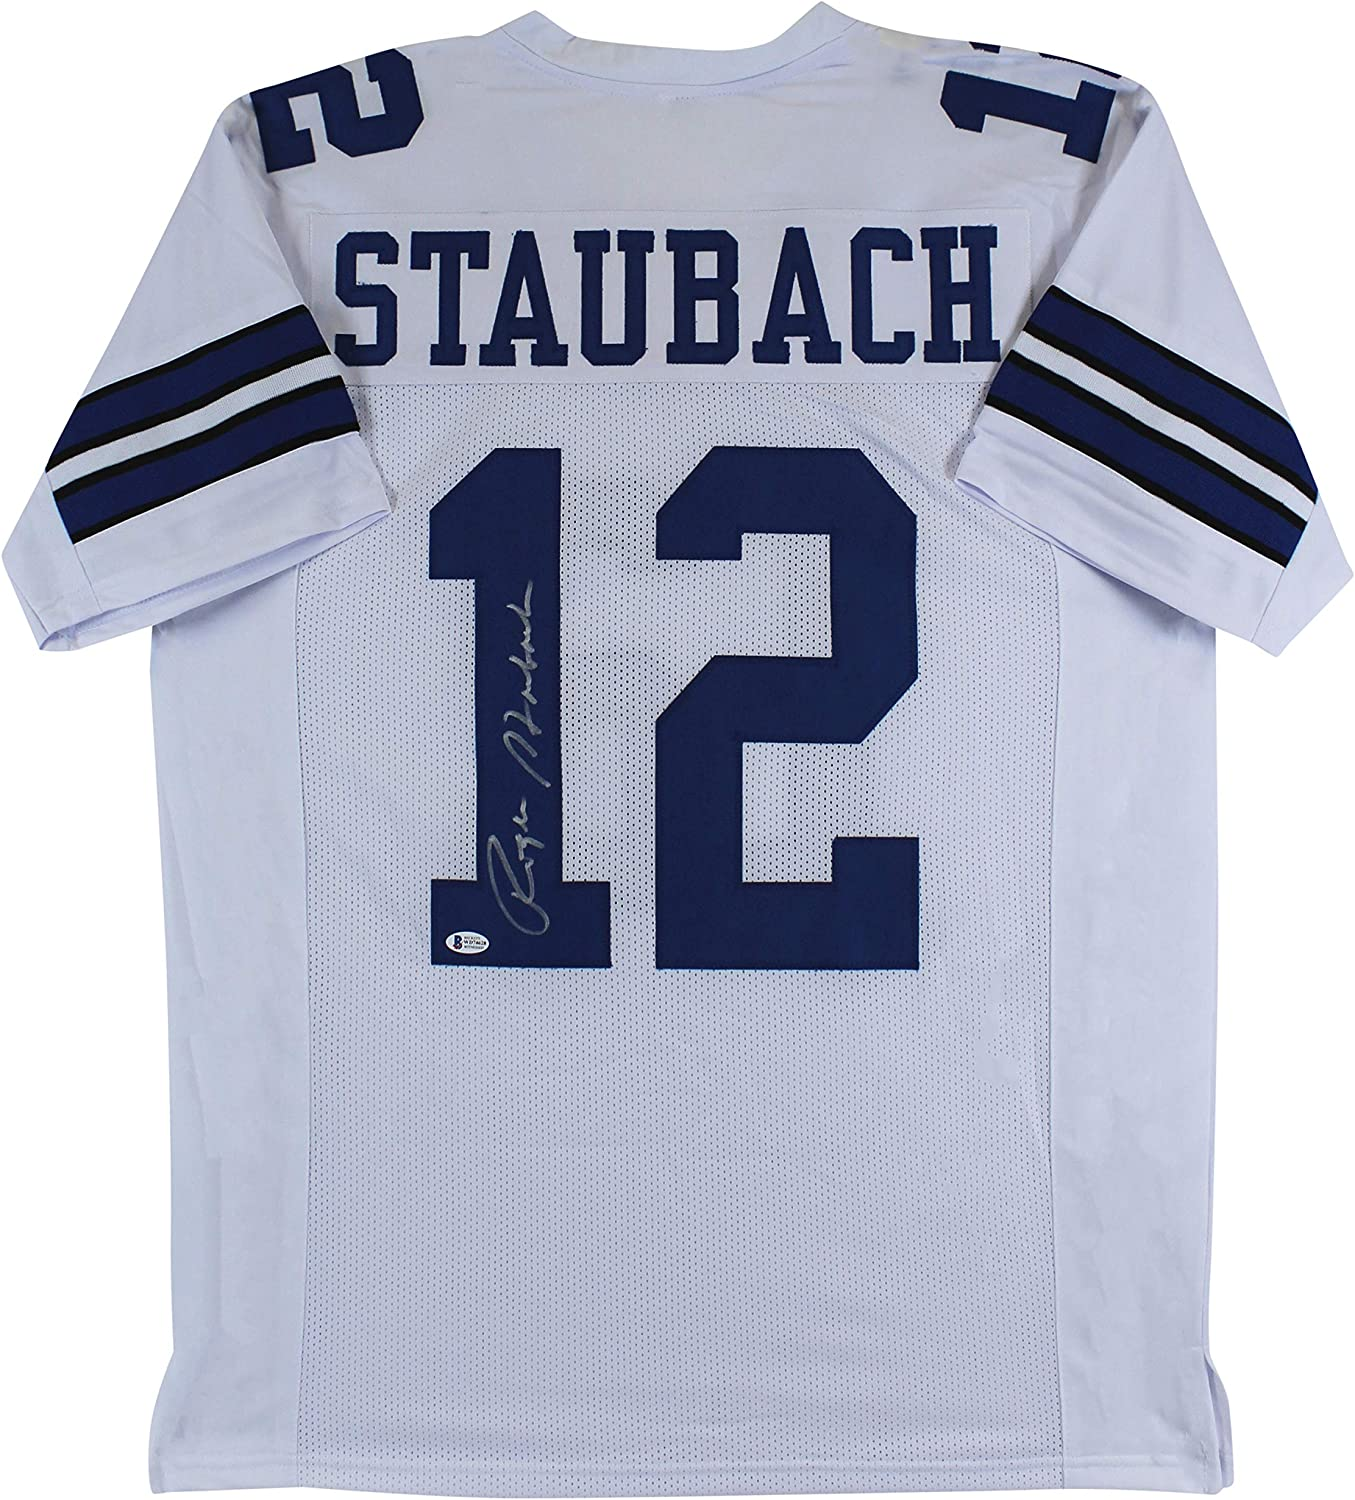 Roger Staubach Authentic Signed White Pro Style Jersey BAS